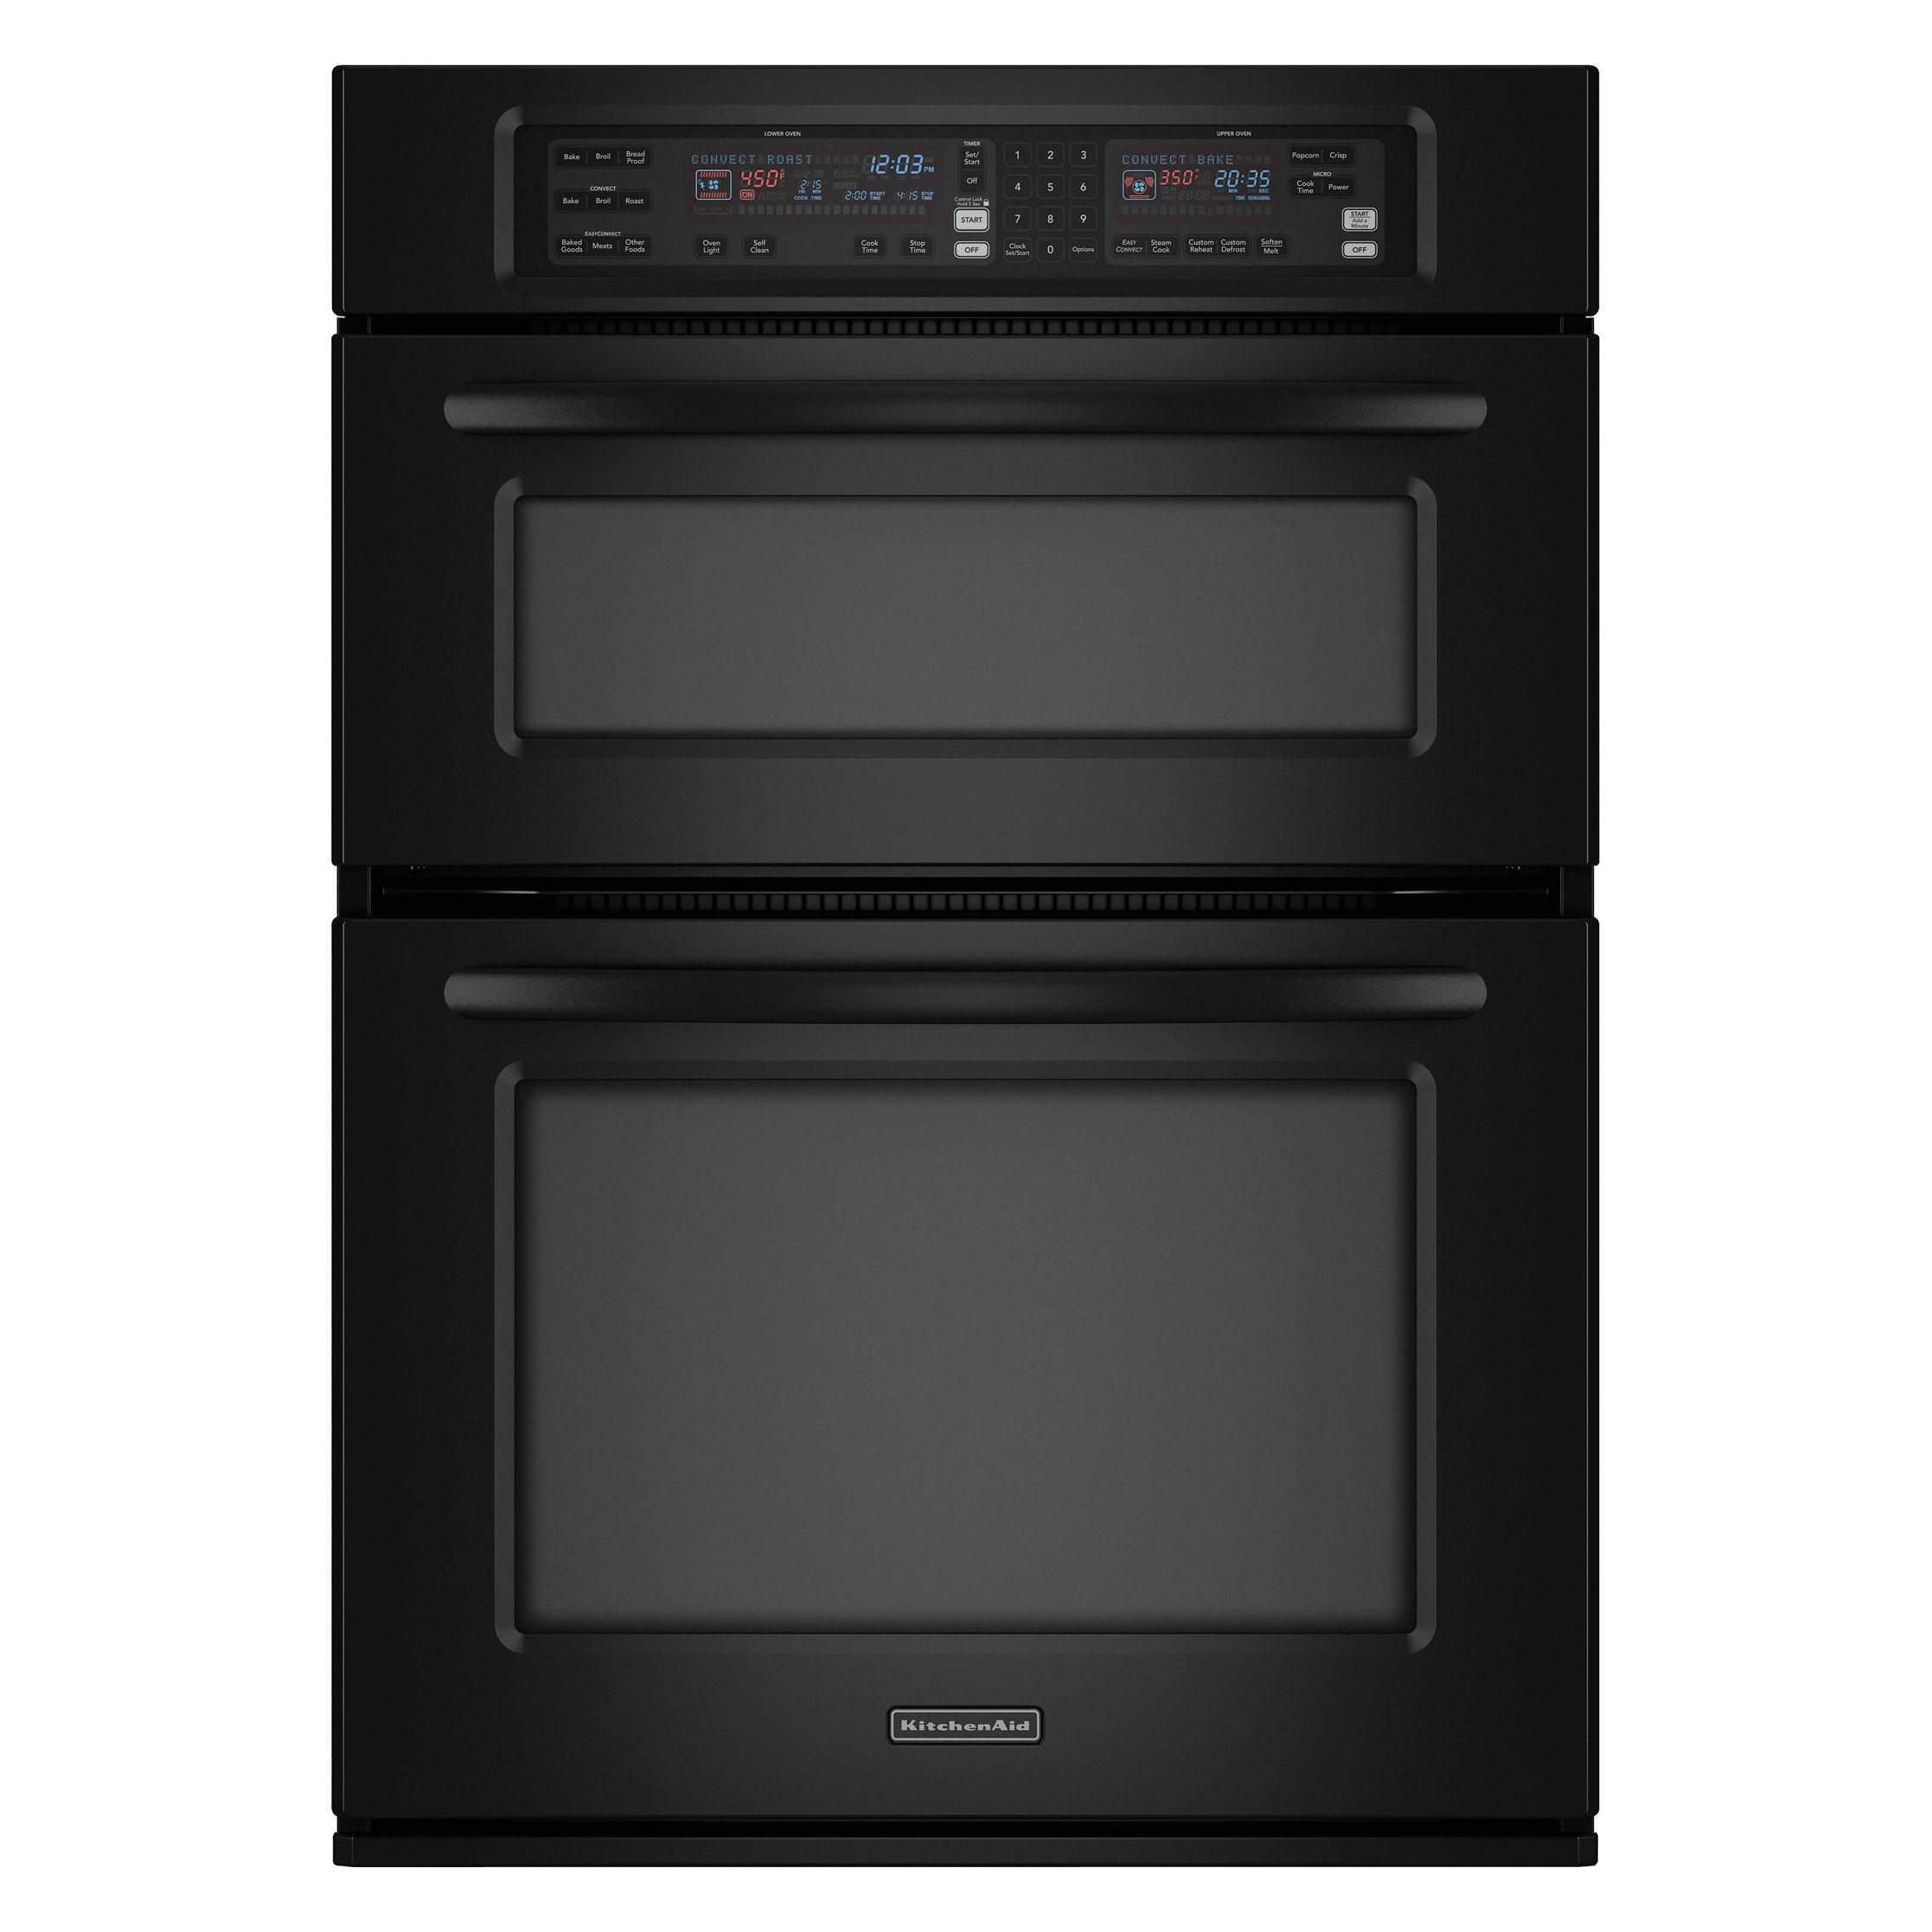 Kitchen Aid Wall Oven  KitchenAid Electric bination Wall Oven 30 in